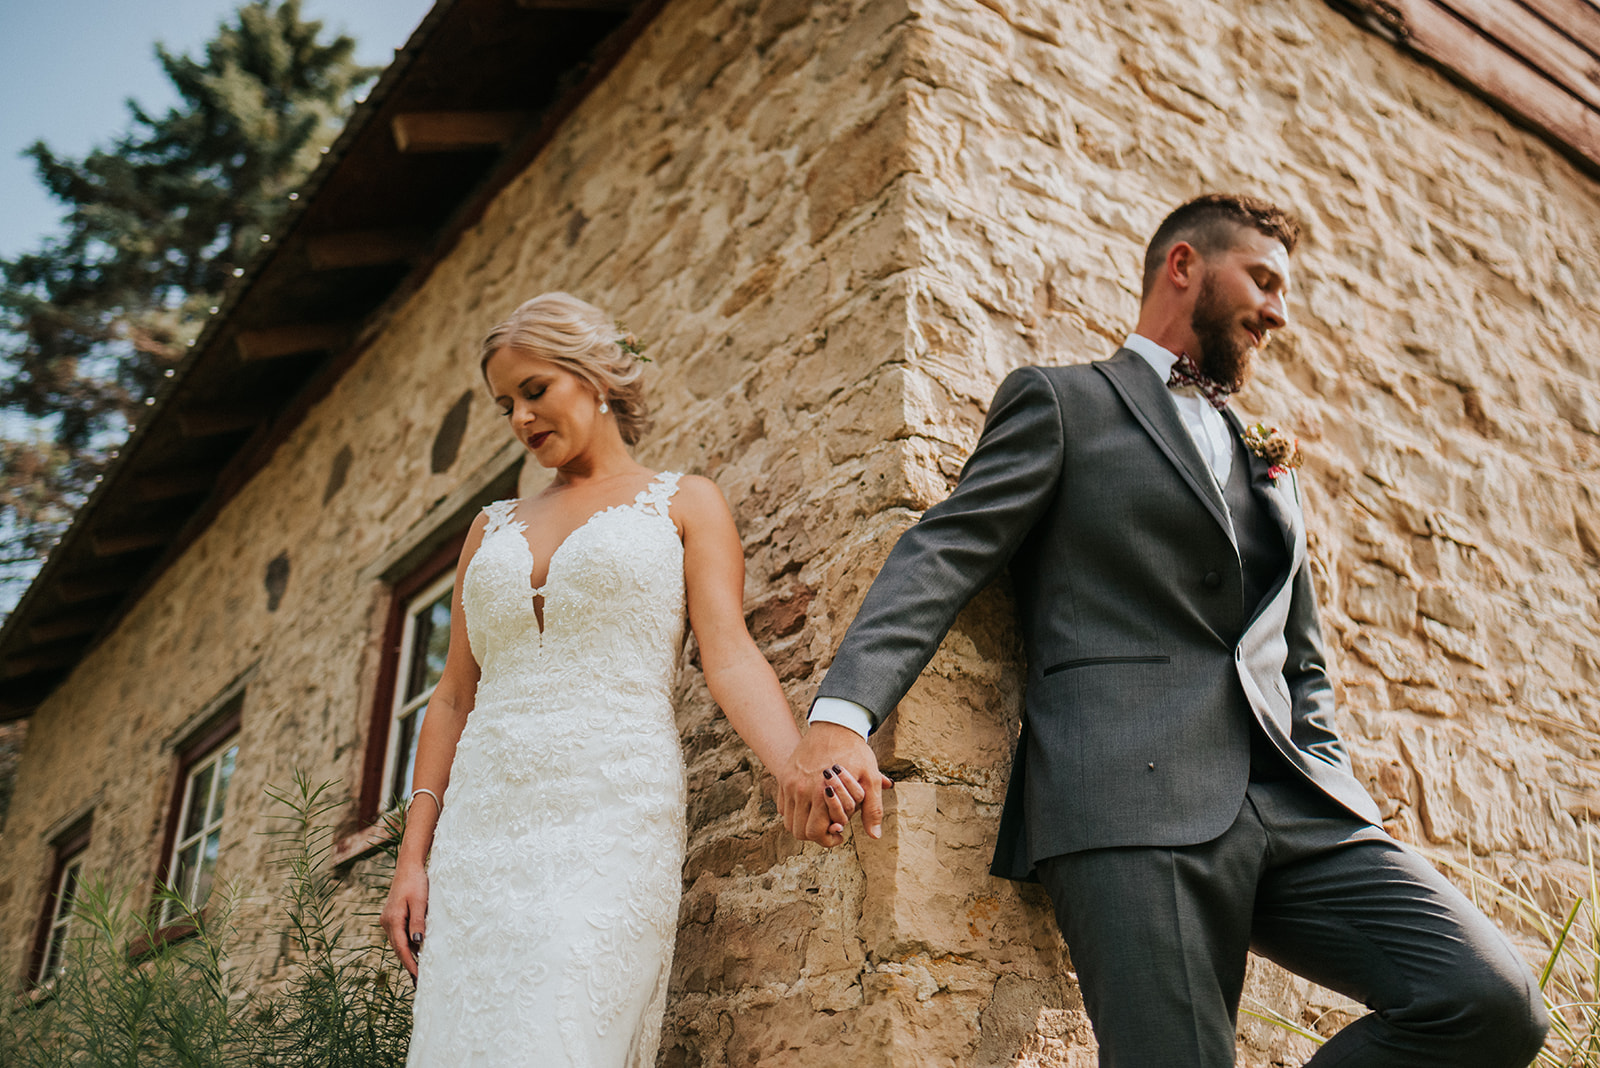 overthevineswisconsinwedding_0386.jpg